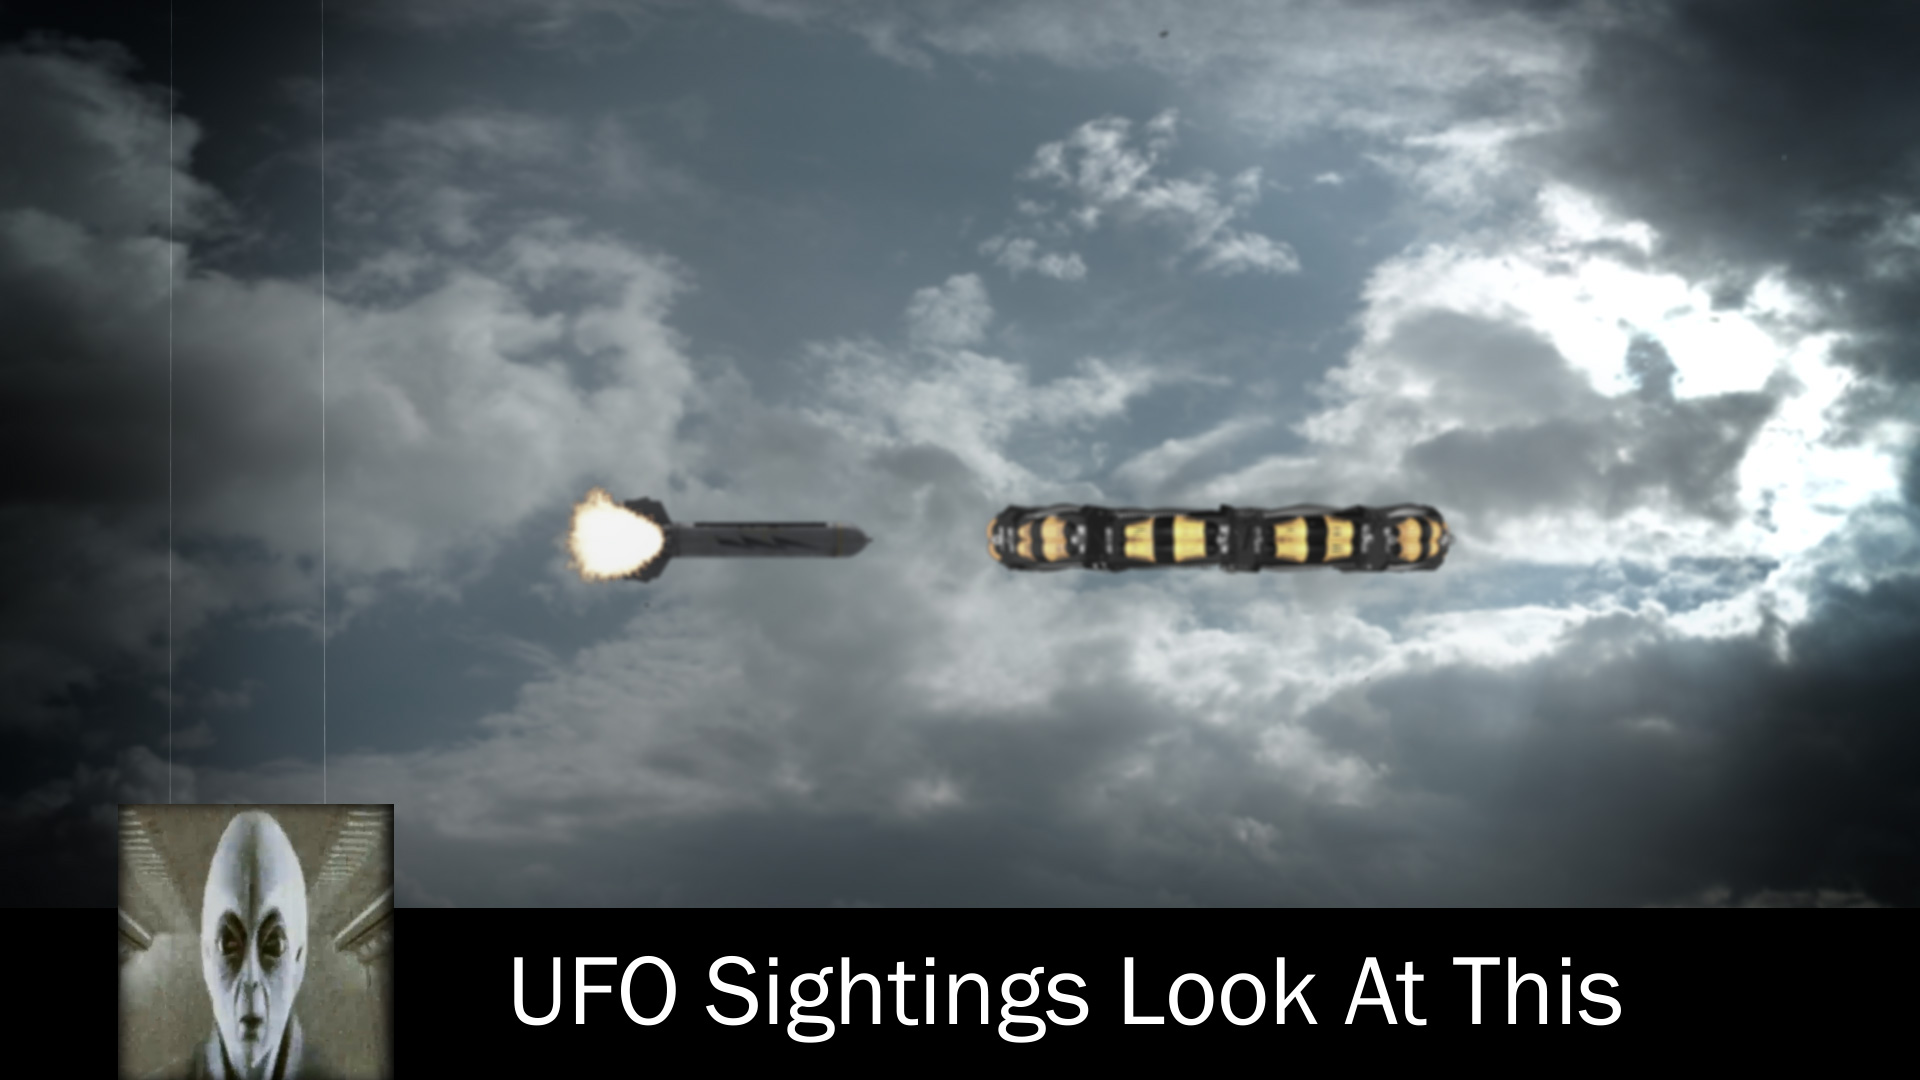 UFO Sightings Look At This July 10th 2017